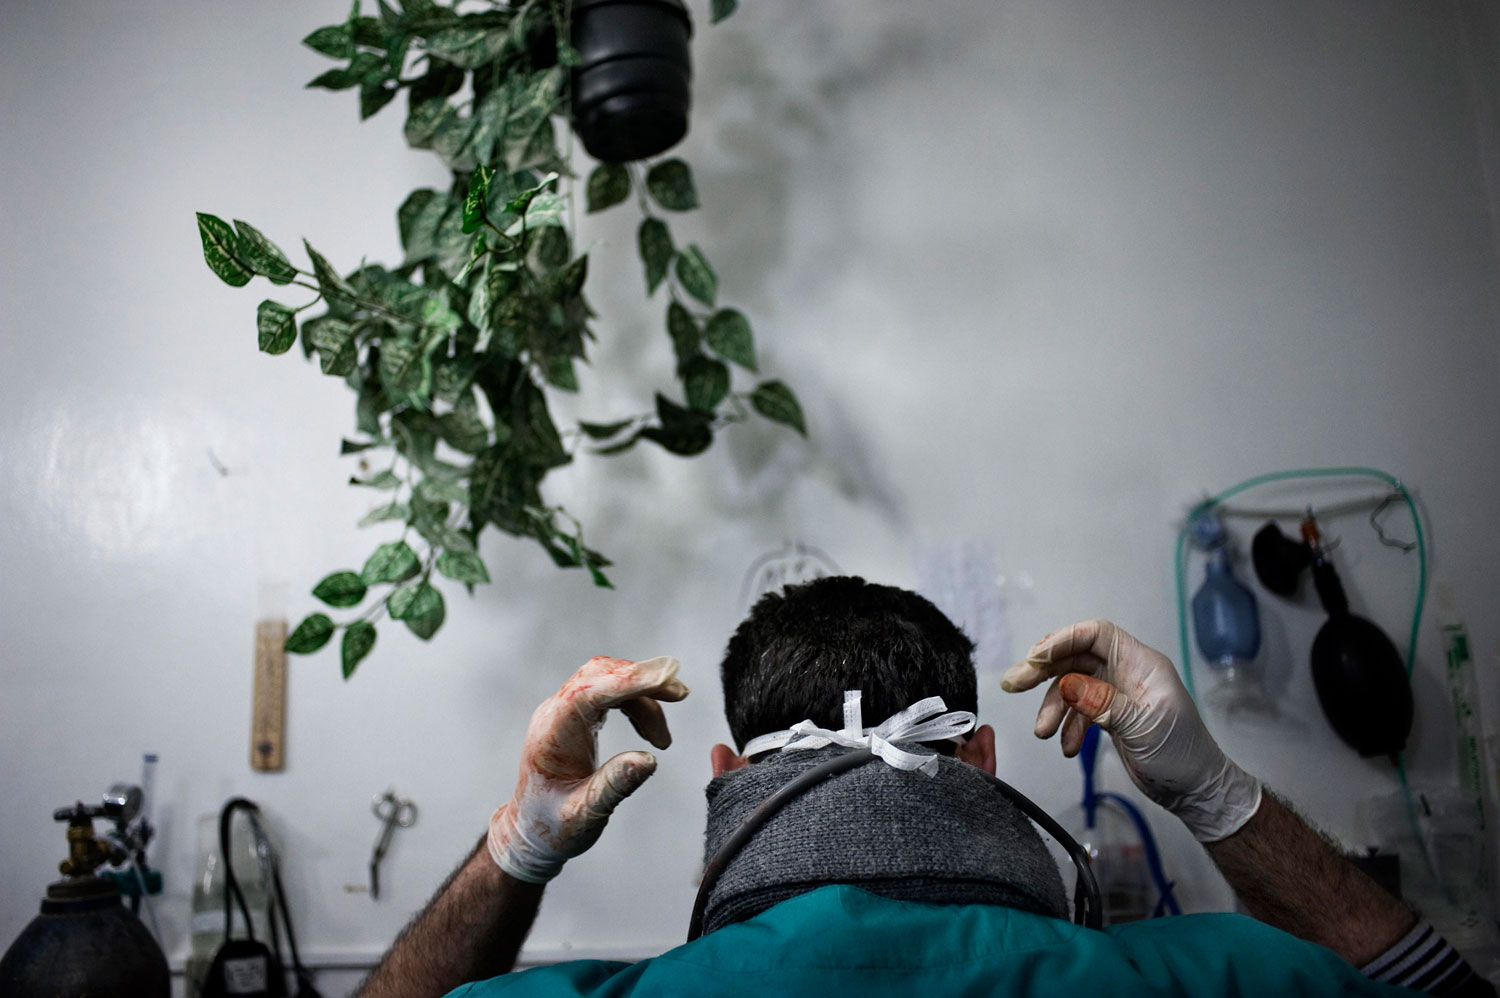 A Syrian doctor prepares to perform surgery on wounded men in a house that is used as hospital in Bab Amr. Feb. 6, 2012